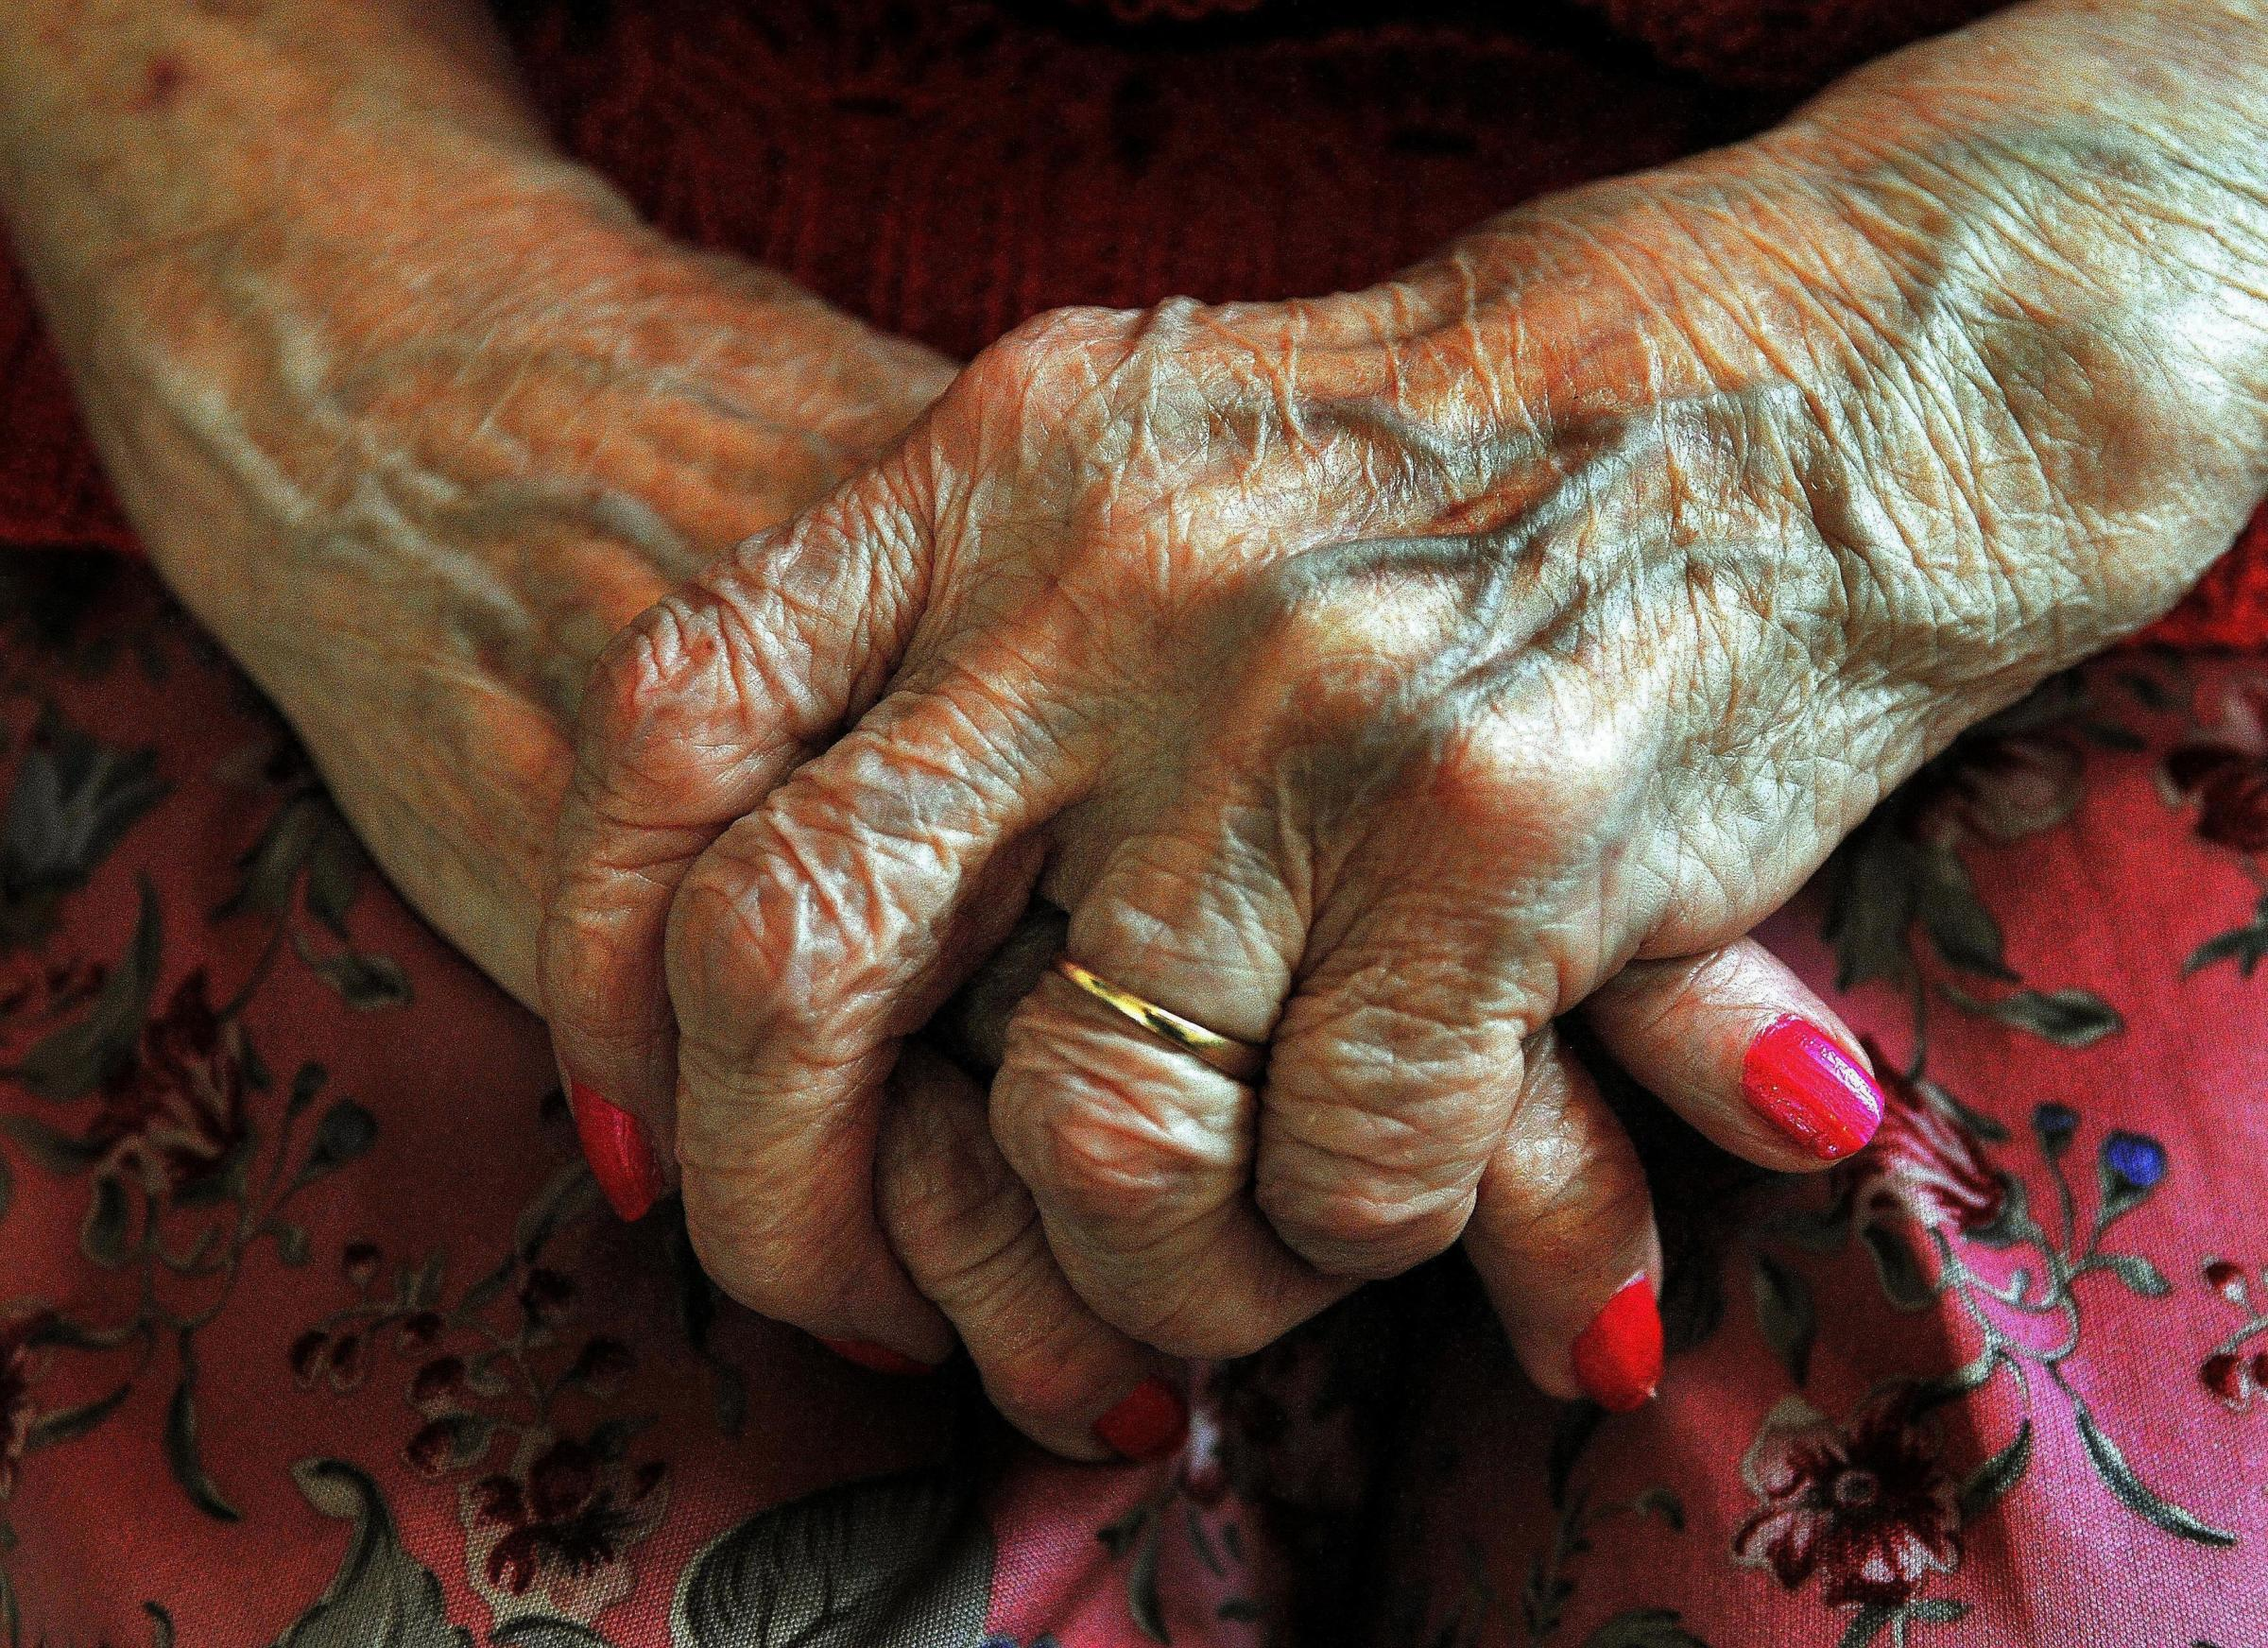 Elderly residents may have to move